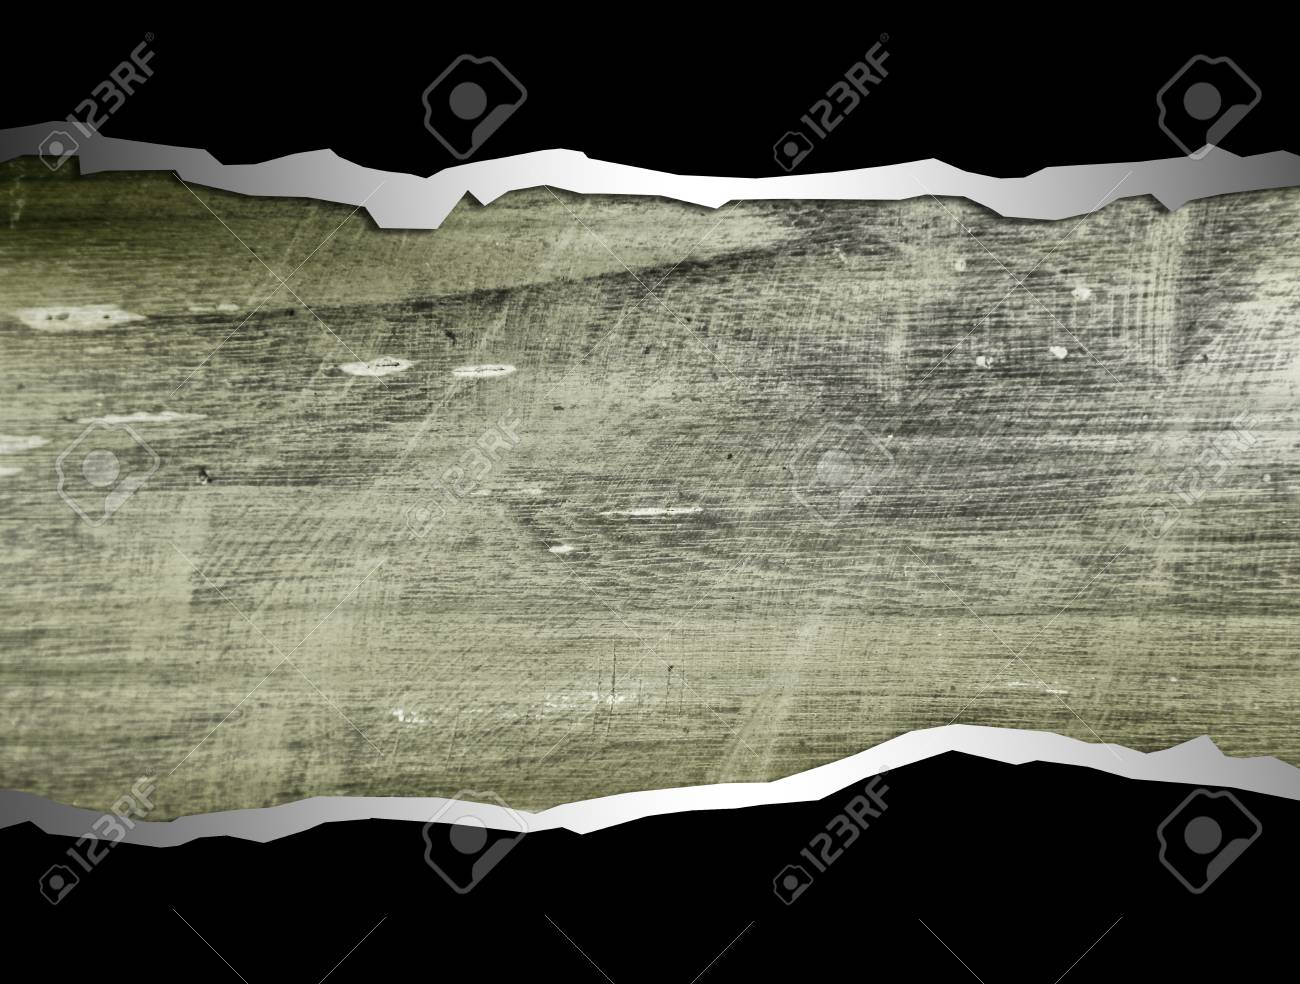 Grunge texture with black frame, vintage background Stock Photo - 9696760